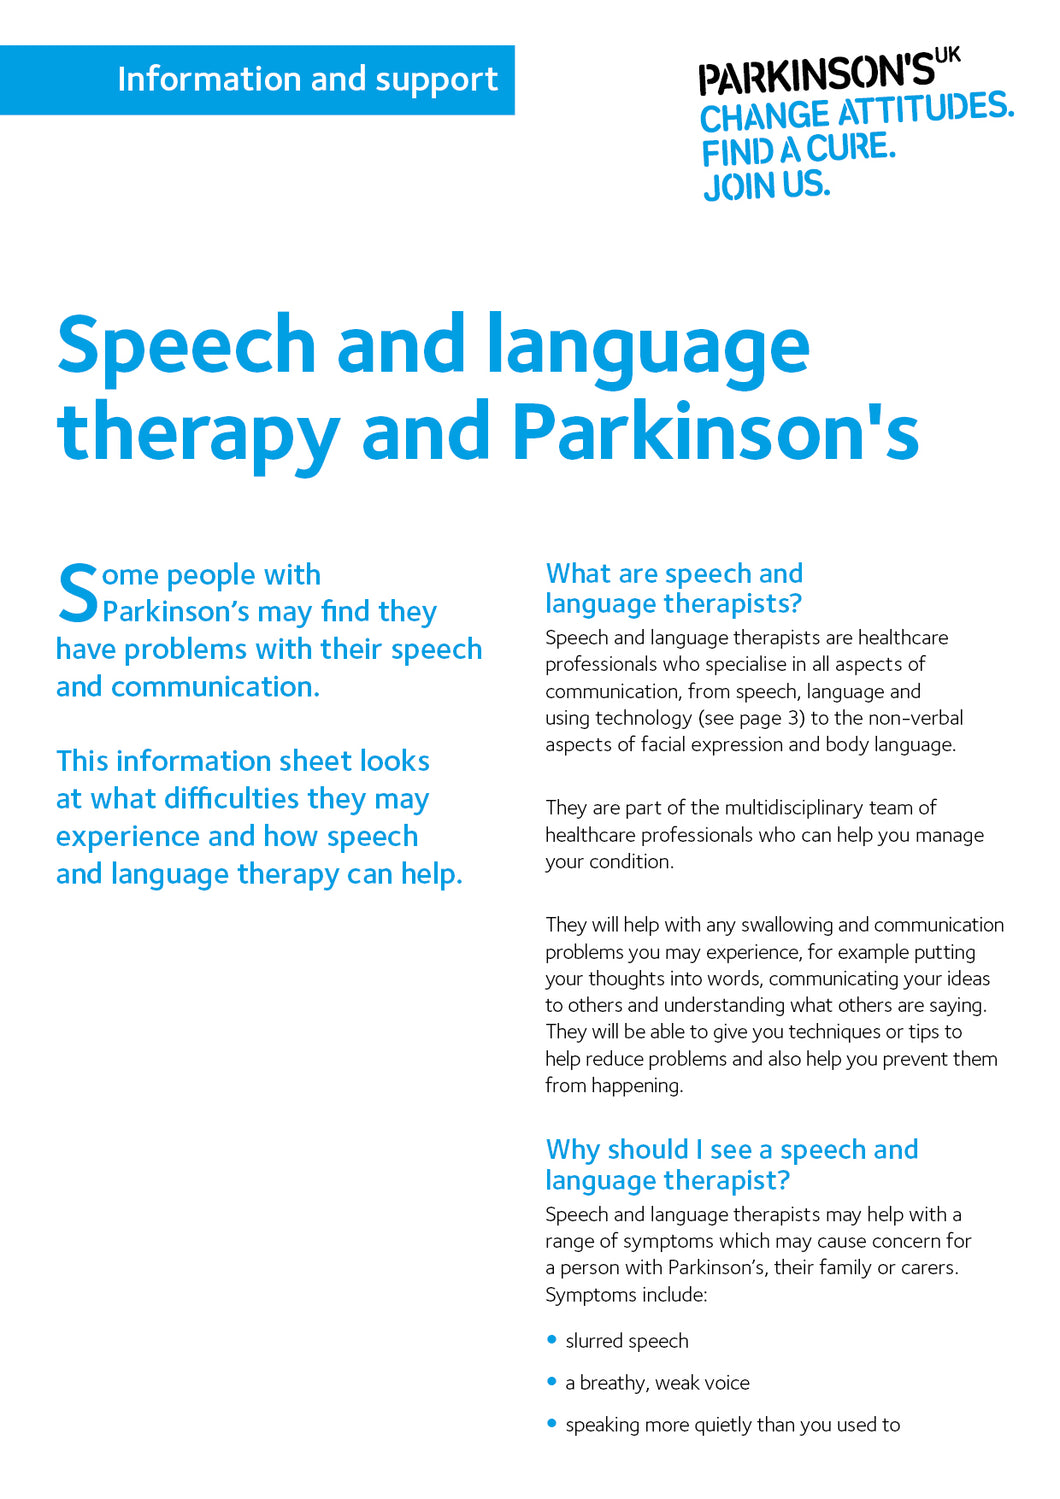 Speech and language therapy and Parkinson's - Parkinson's shop